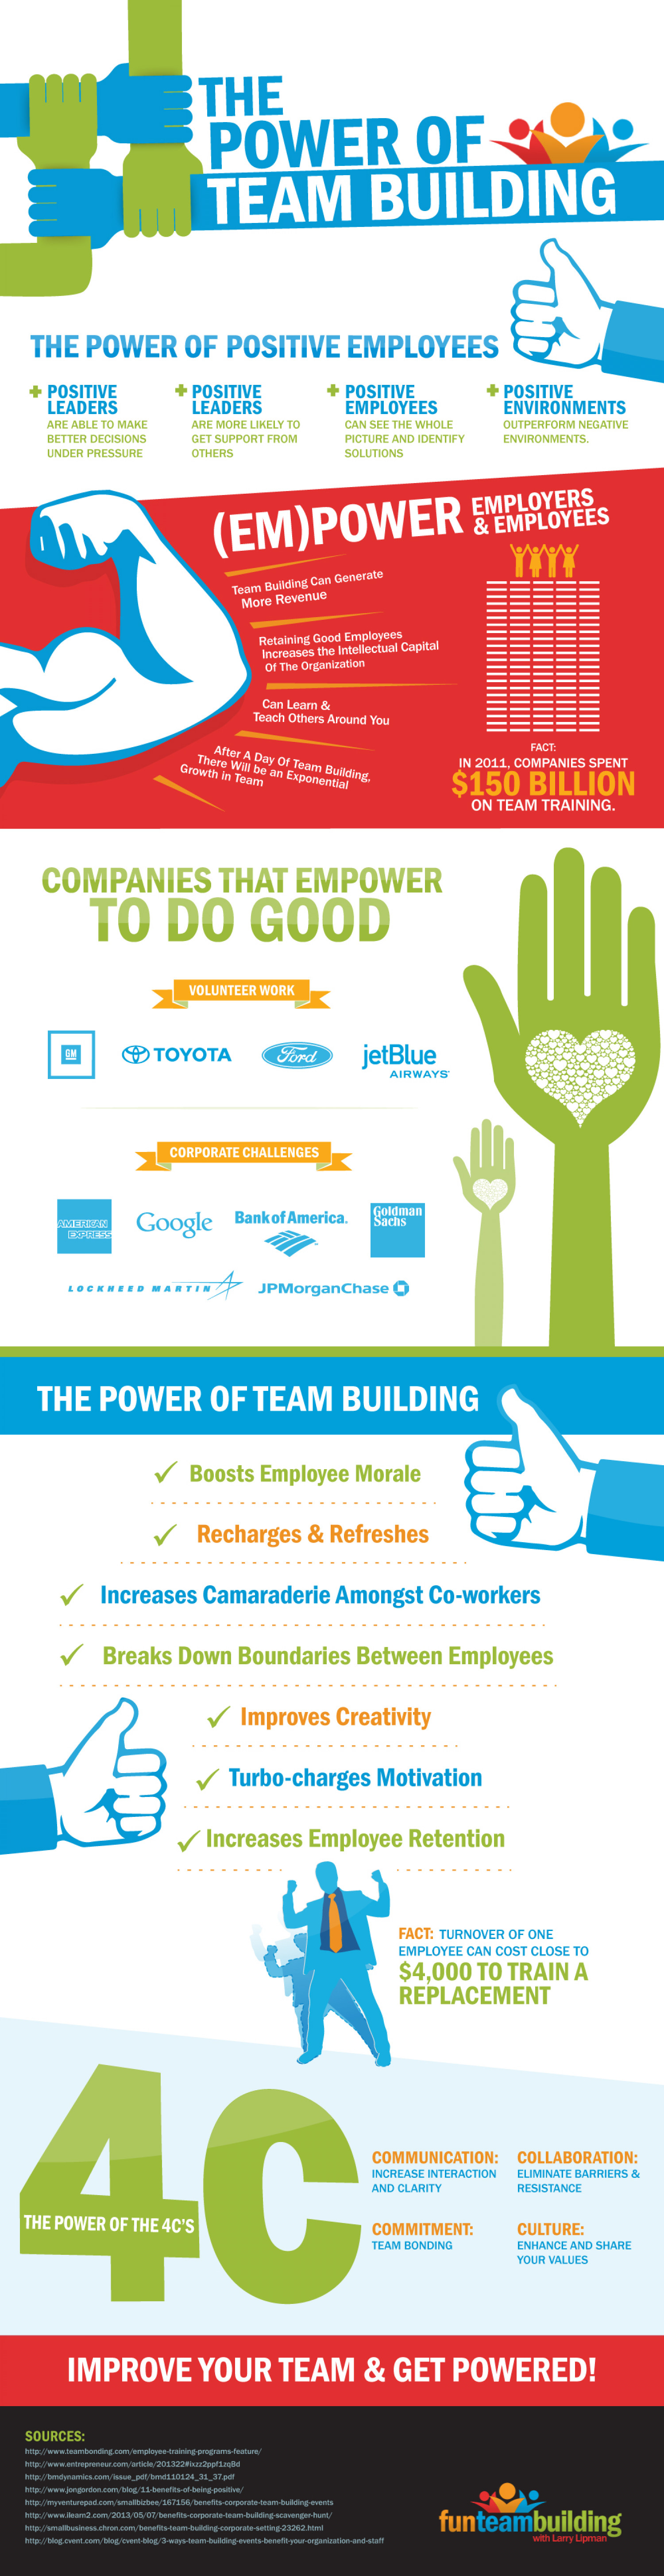 The Power of Team Building